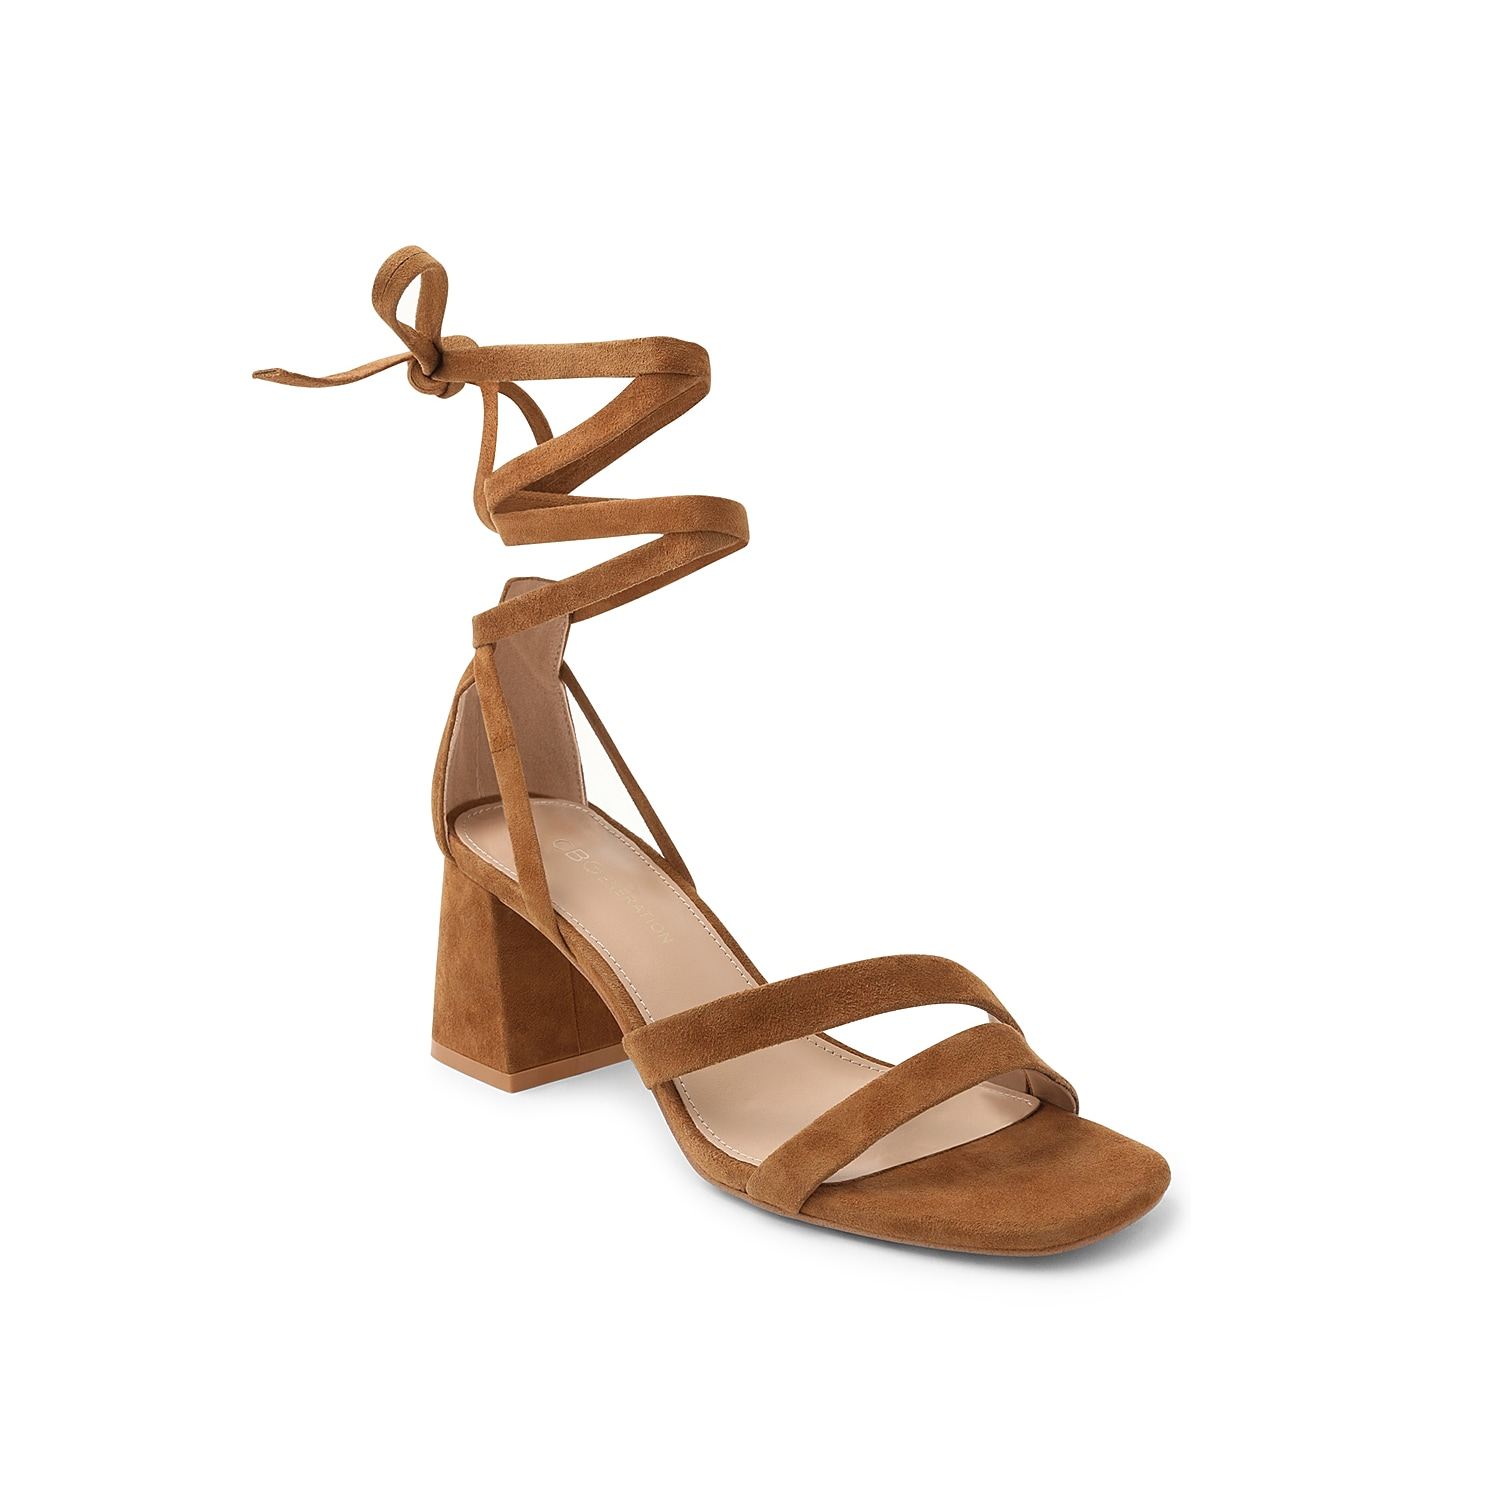 Feminine from heel to toe, the Debby sandal from BCBGeneration will let your feet do the talking. The asymmetrical straps on the forefoot, gorgeous wrapped ankle tie, and cushioning memory foam make this sandal truly standout.